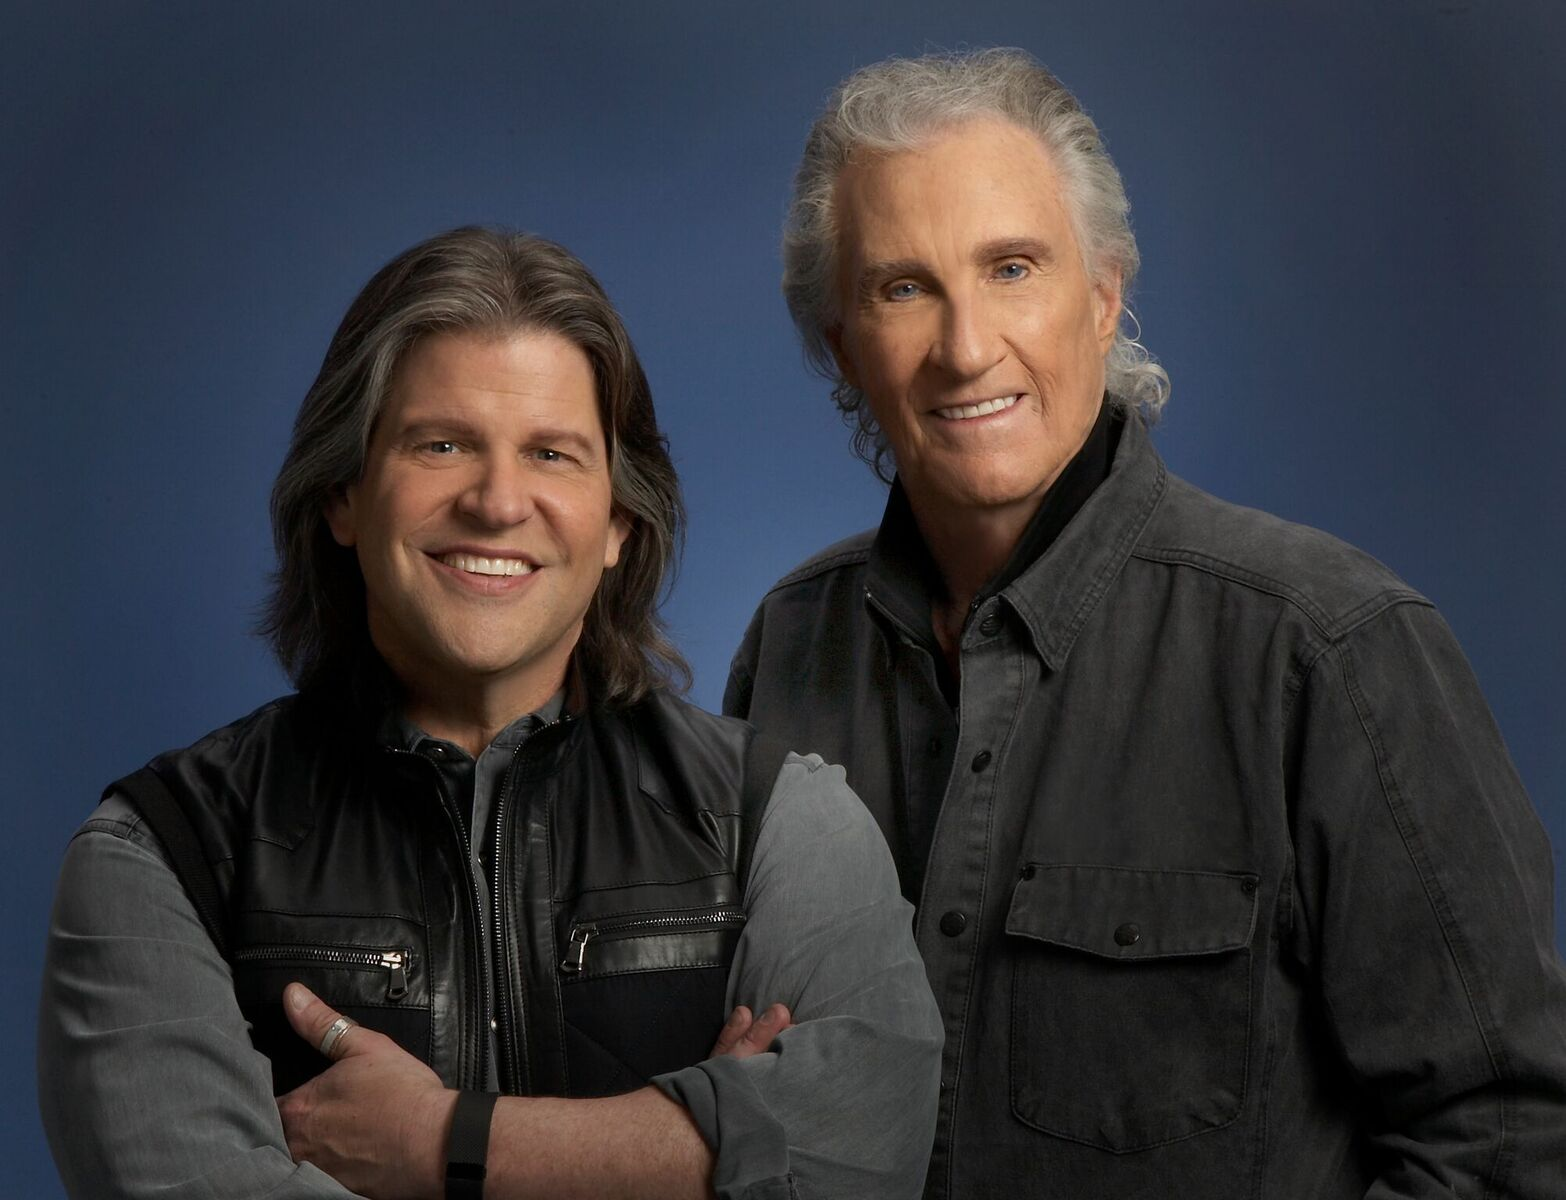 The Righteous Brothers Set To Perform At Luhrs Center